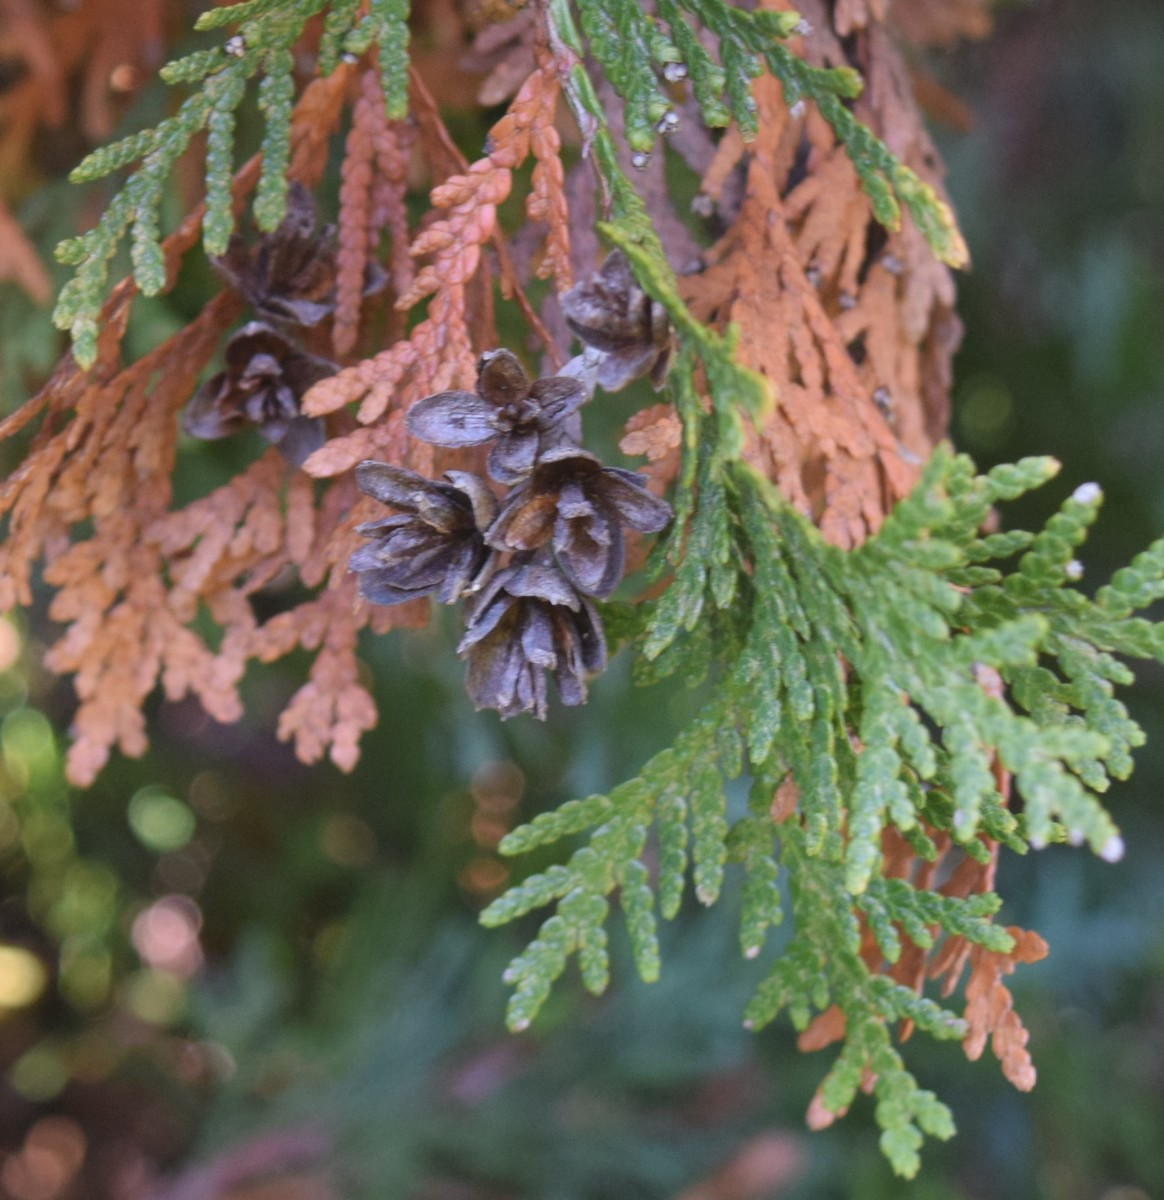 Scale-like foliage of conifer Arborvitae with small cones, ready to drop some old brown leaves.